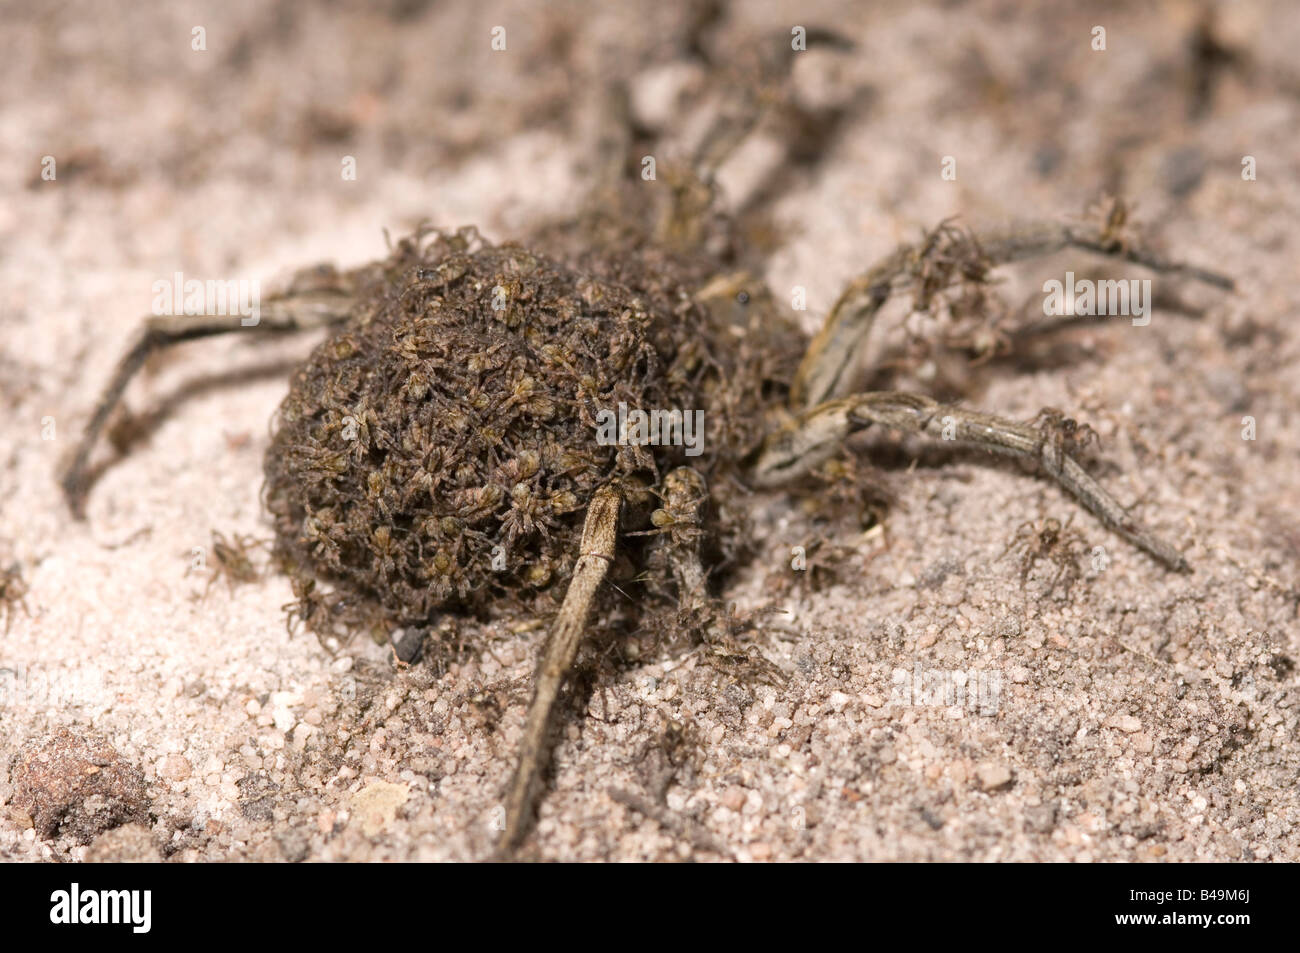 Australian wolf spider female carrying young on her back - Stock Image